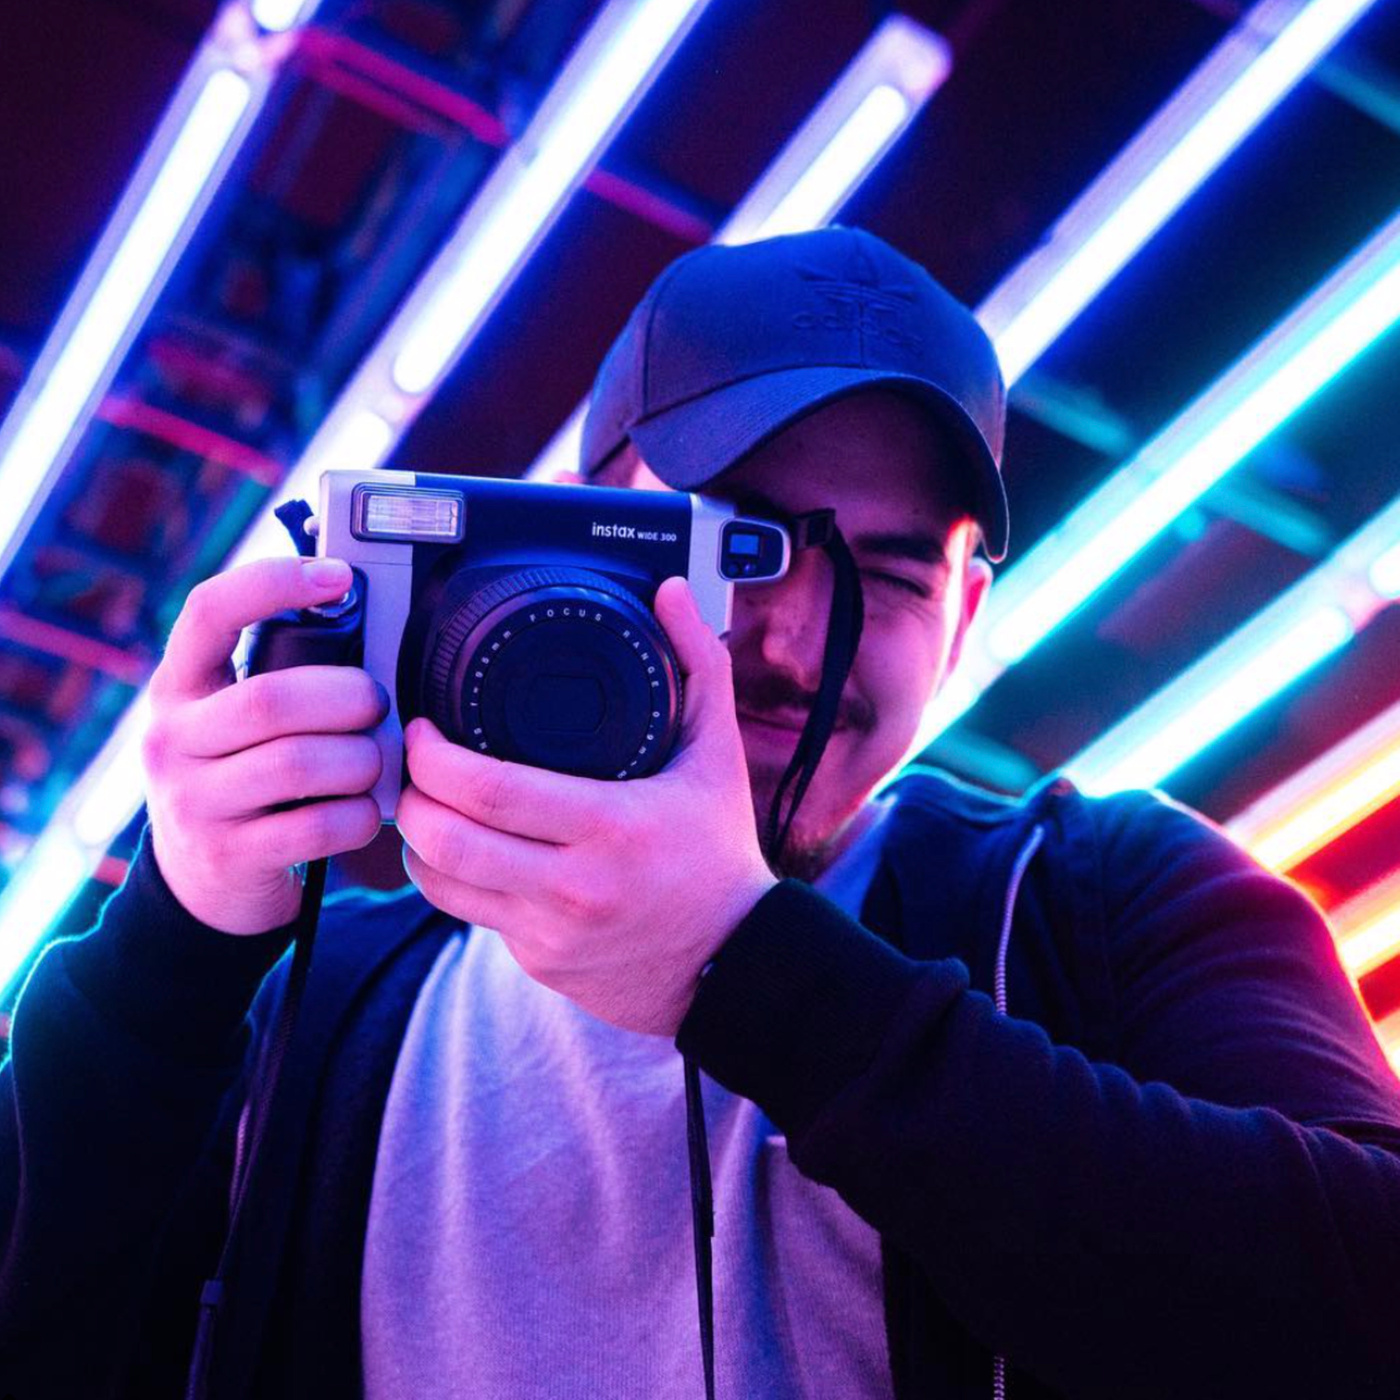 Matthew Ligotti - Starting his own Instagram Pop-up and Creative Agency